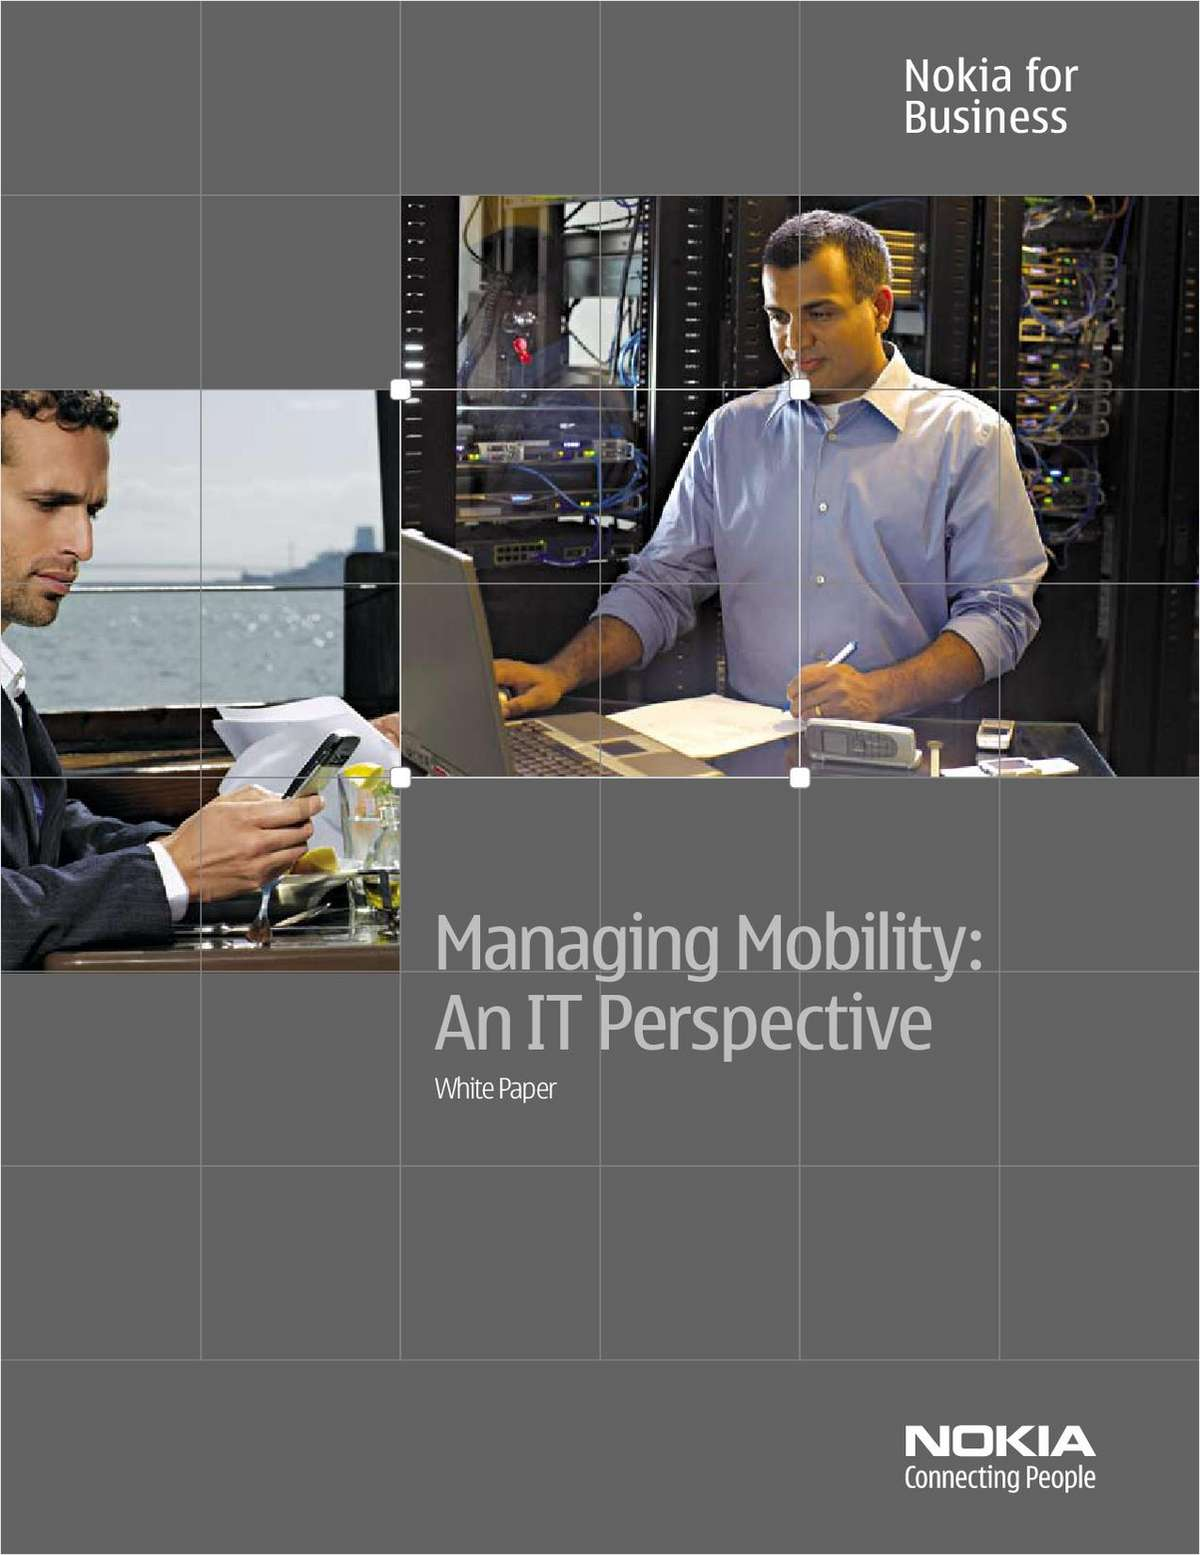 Managing Mobility: An IT Perspective